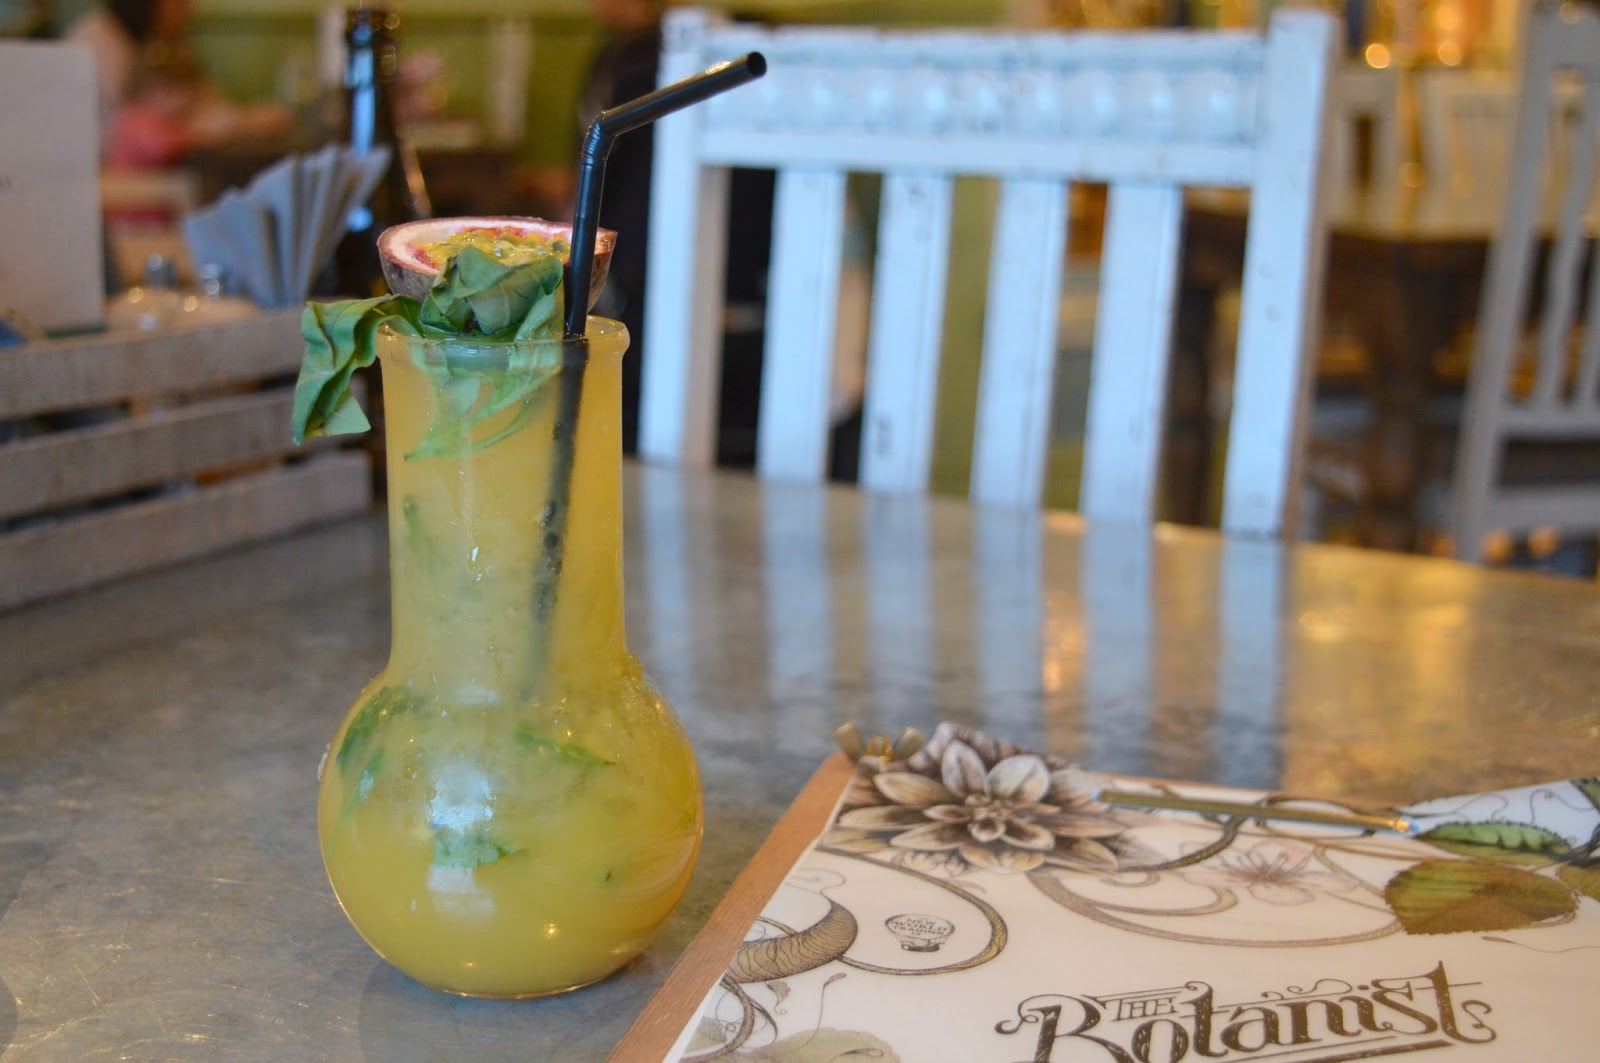 The Botanist Newcastle - Spring Menu Review